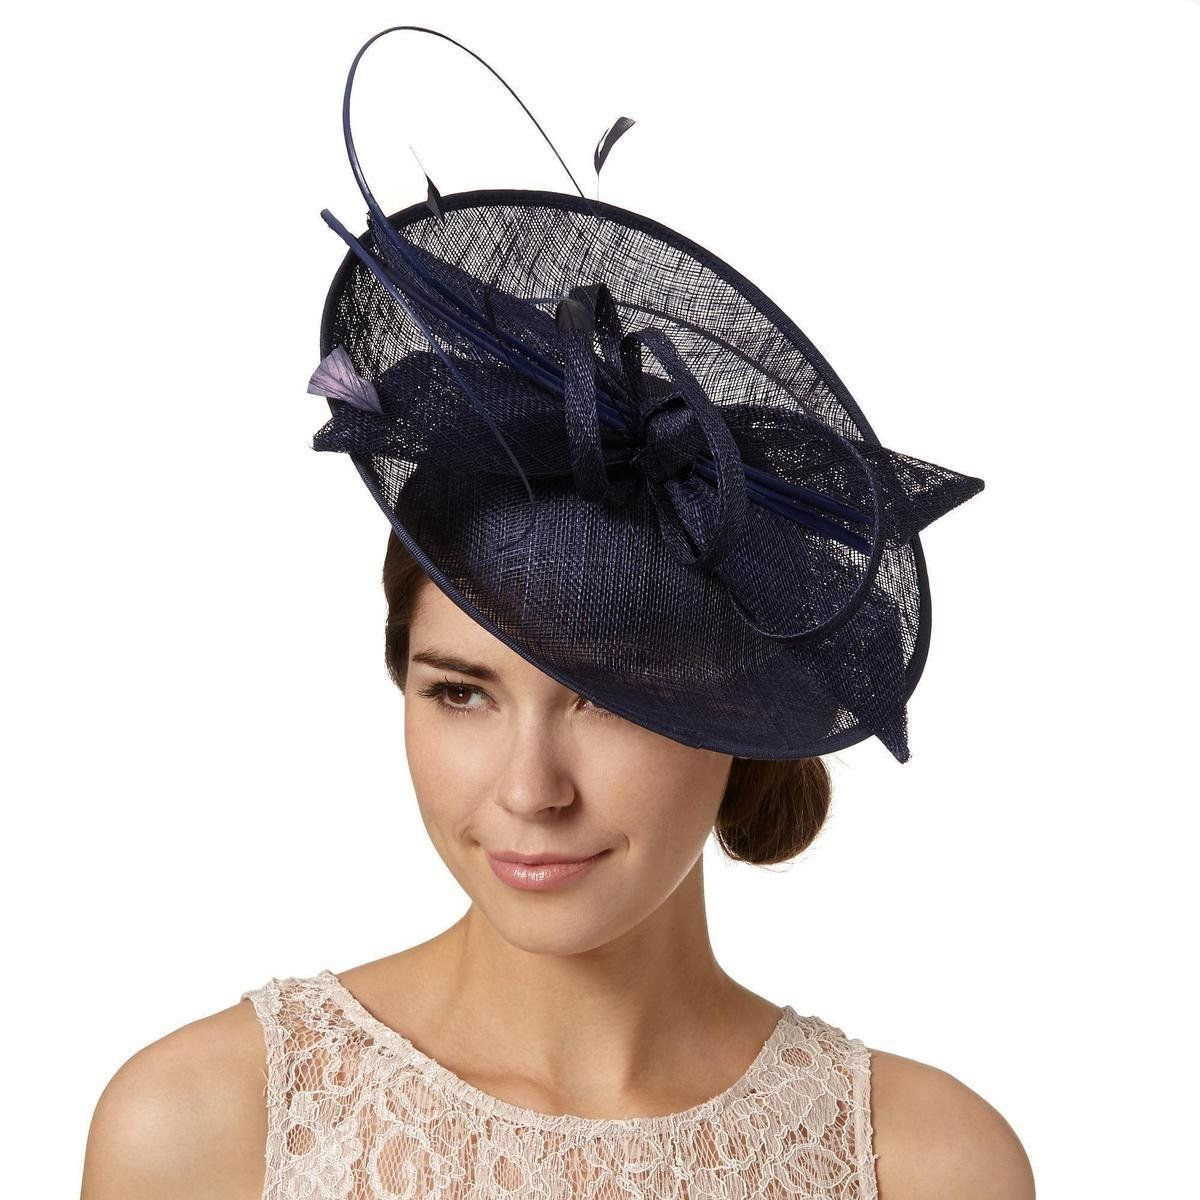 Designer navy dipped crown saucer fascinator http   picvpic.com women- 1a86649652a